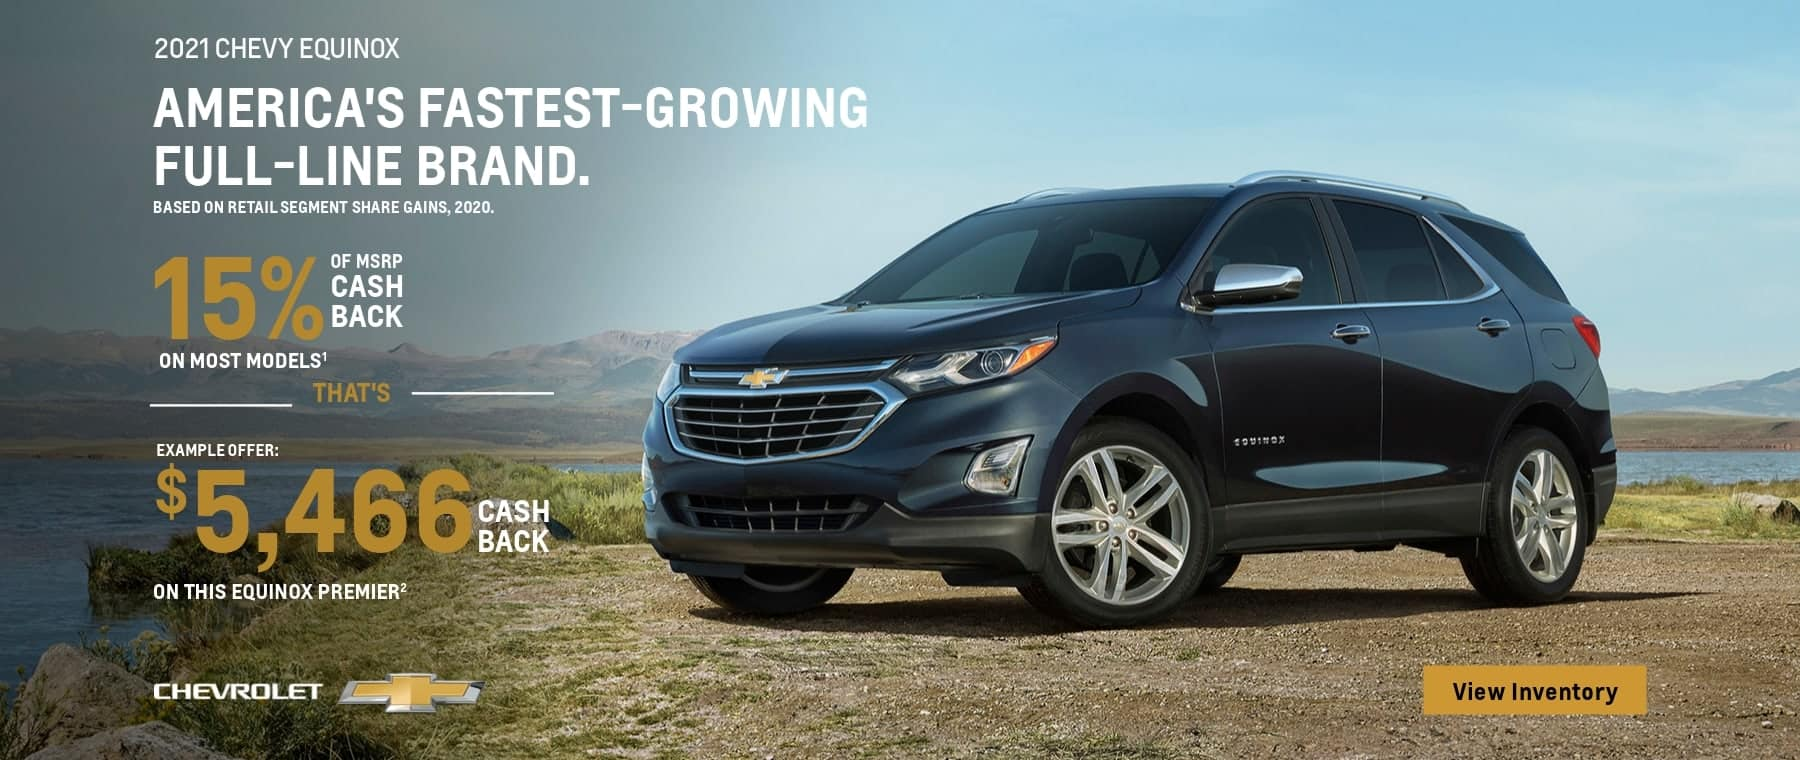 2021 Equinox 15 % of MSRP cash back on most models. That's example offer $5,466 cash back on this Equinox Premier.